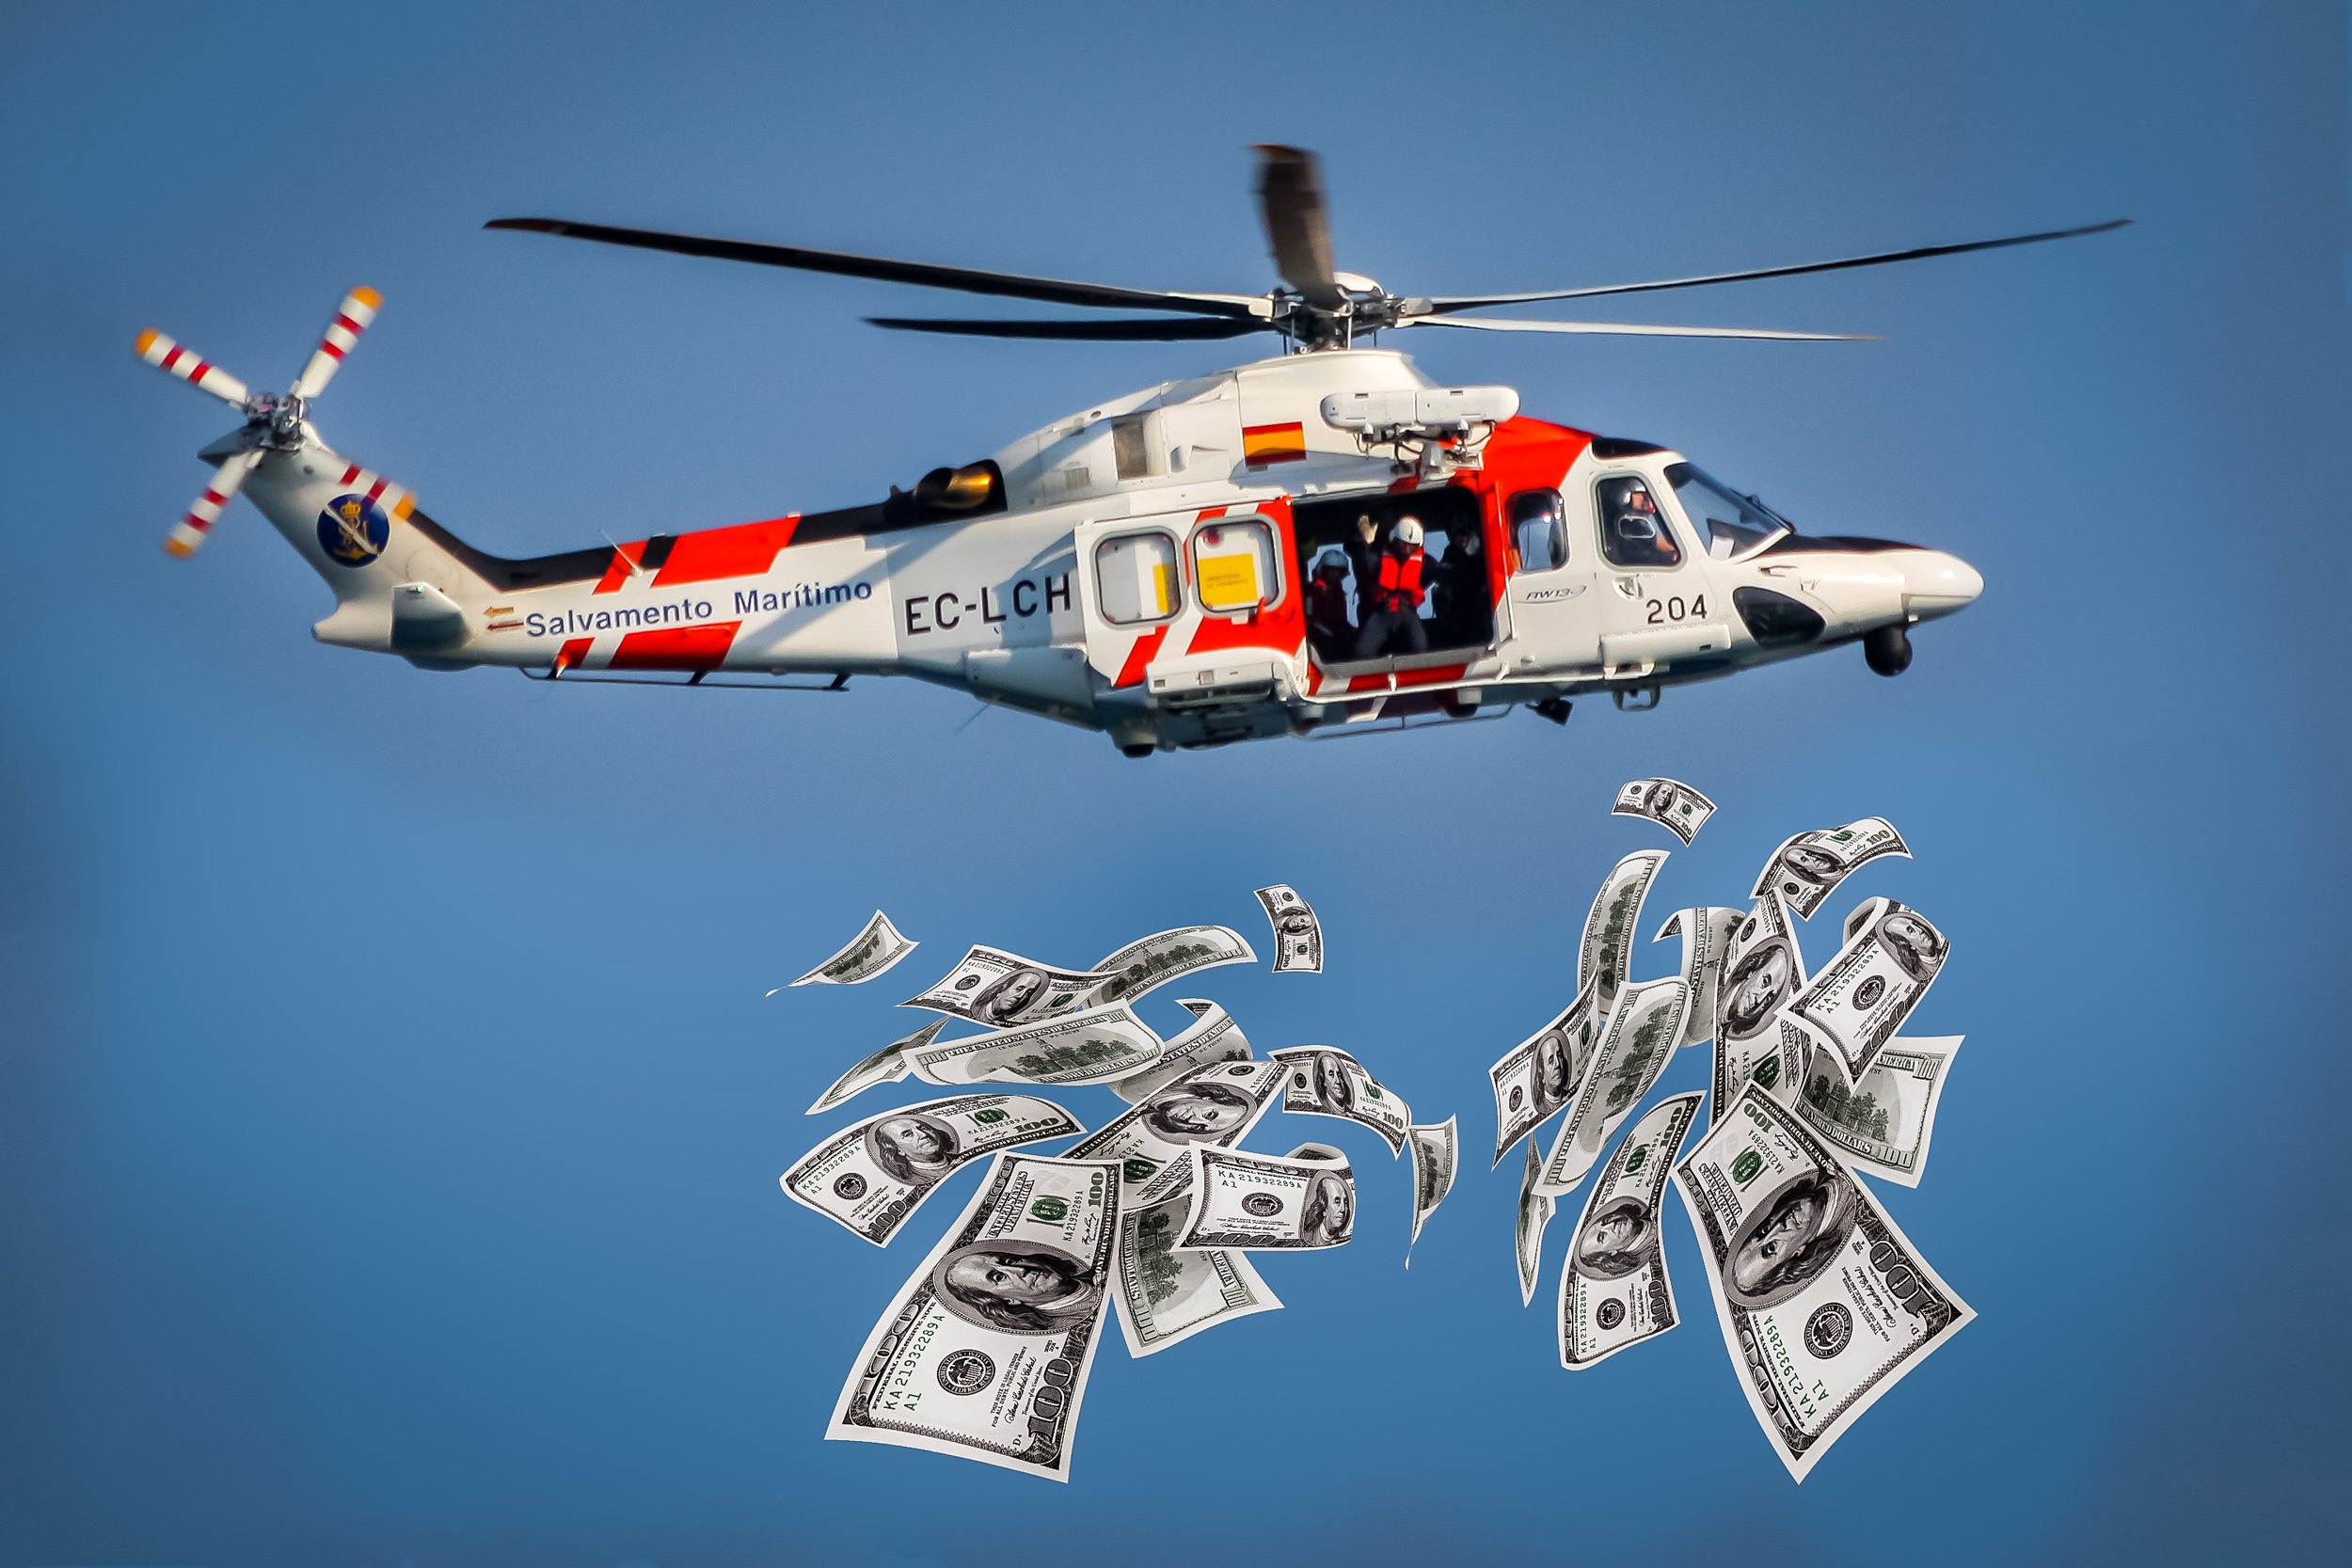 Helicopter Money.Image composed from photos by  Jordi Payà  and  401(K) 2012 . Licensed under CC BY-SA 2.0.